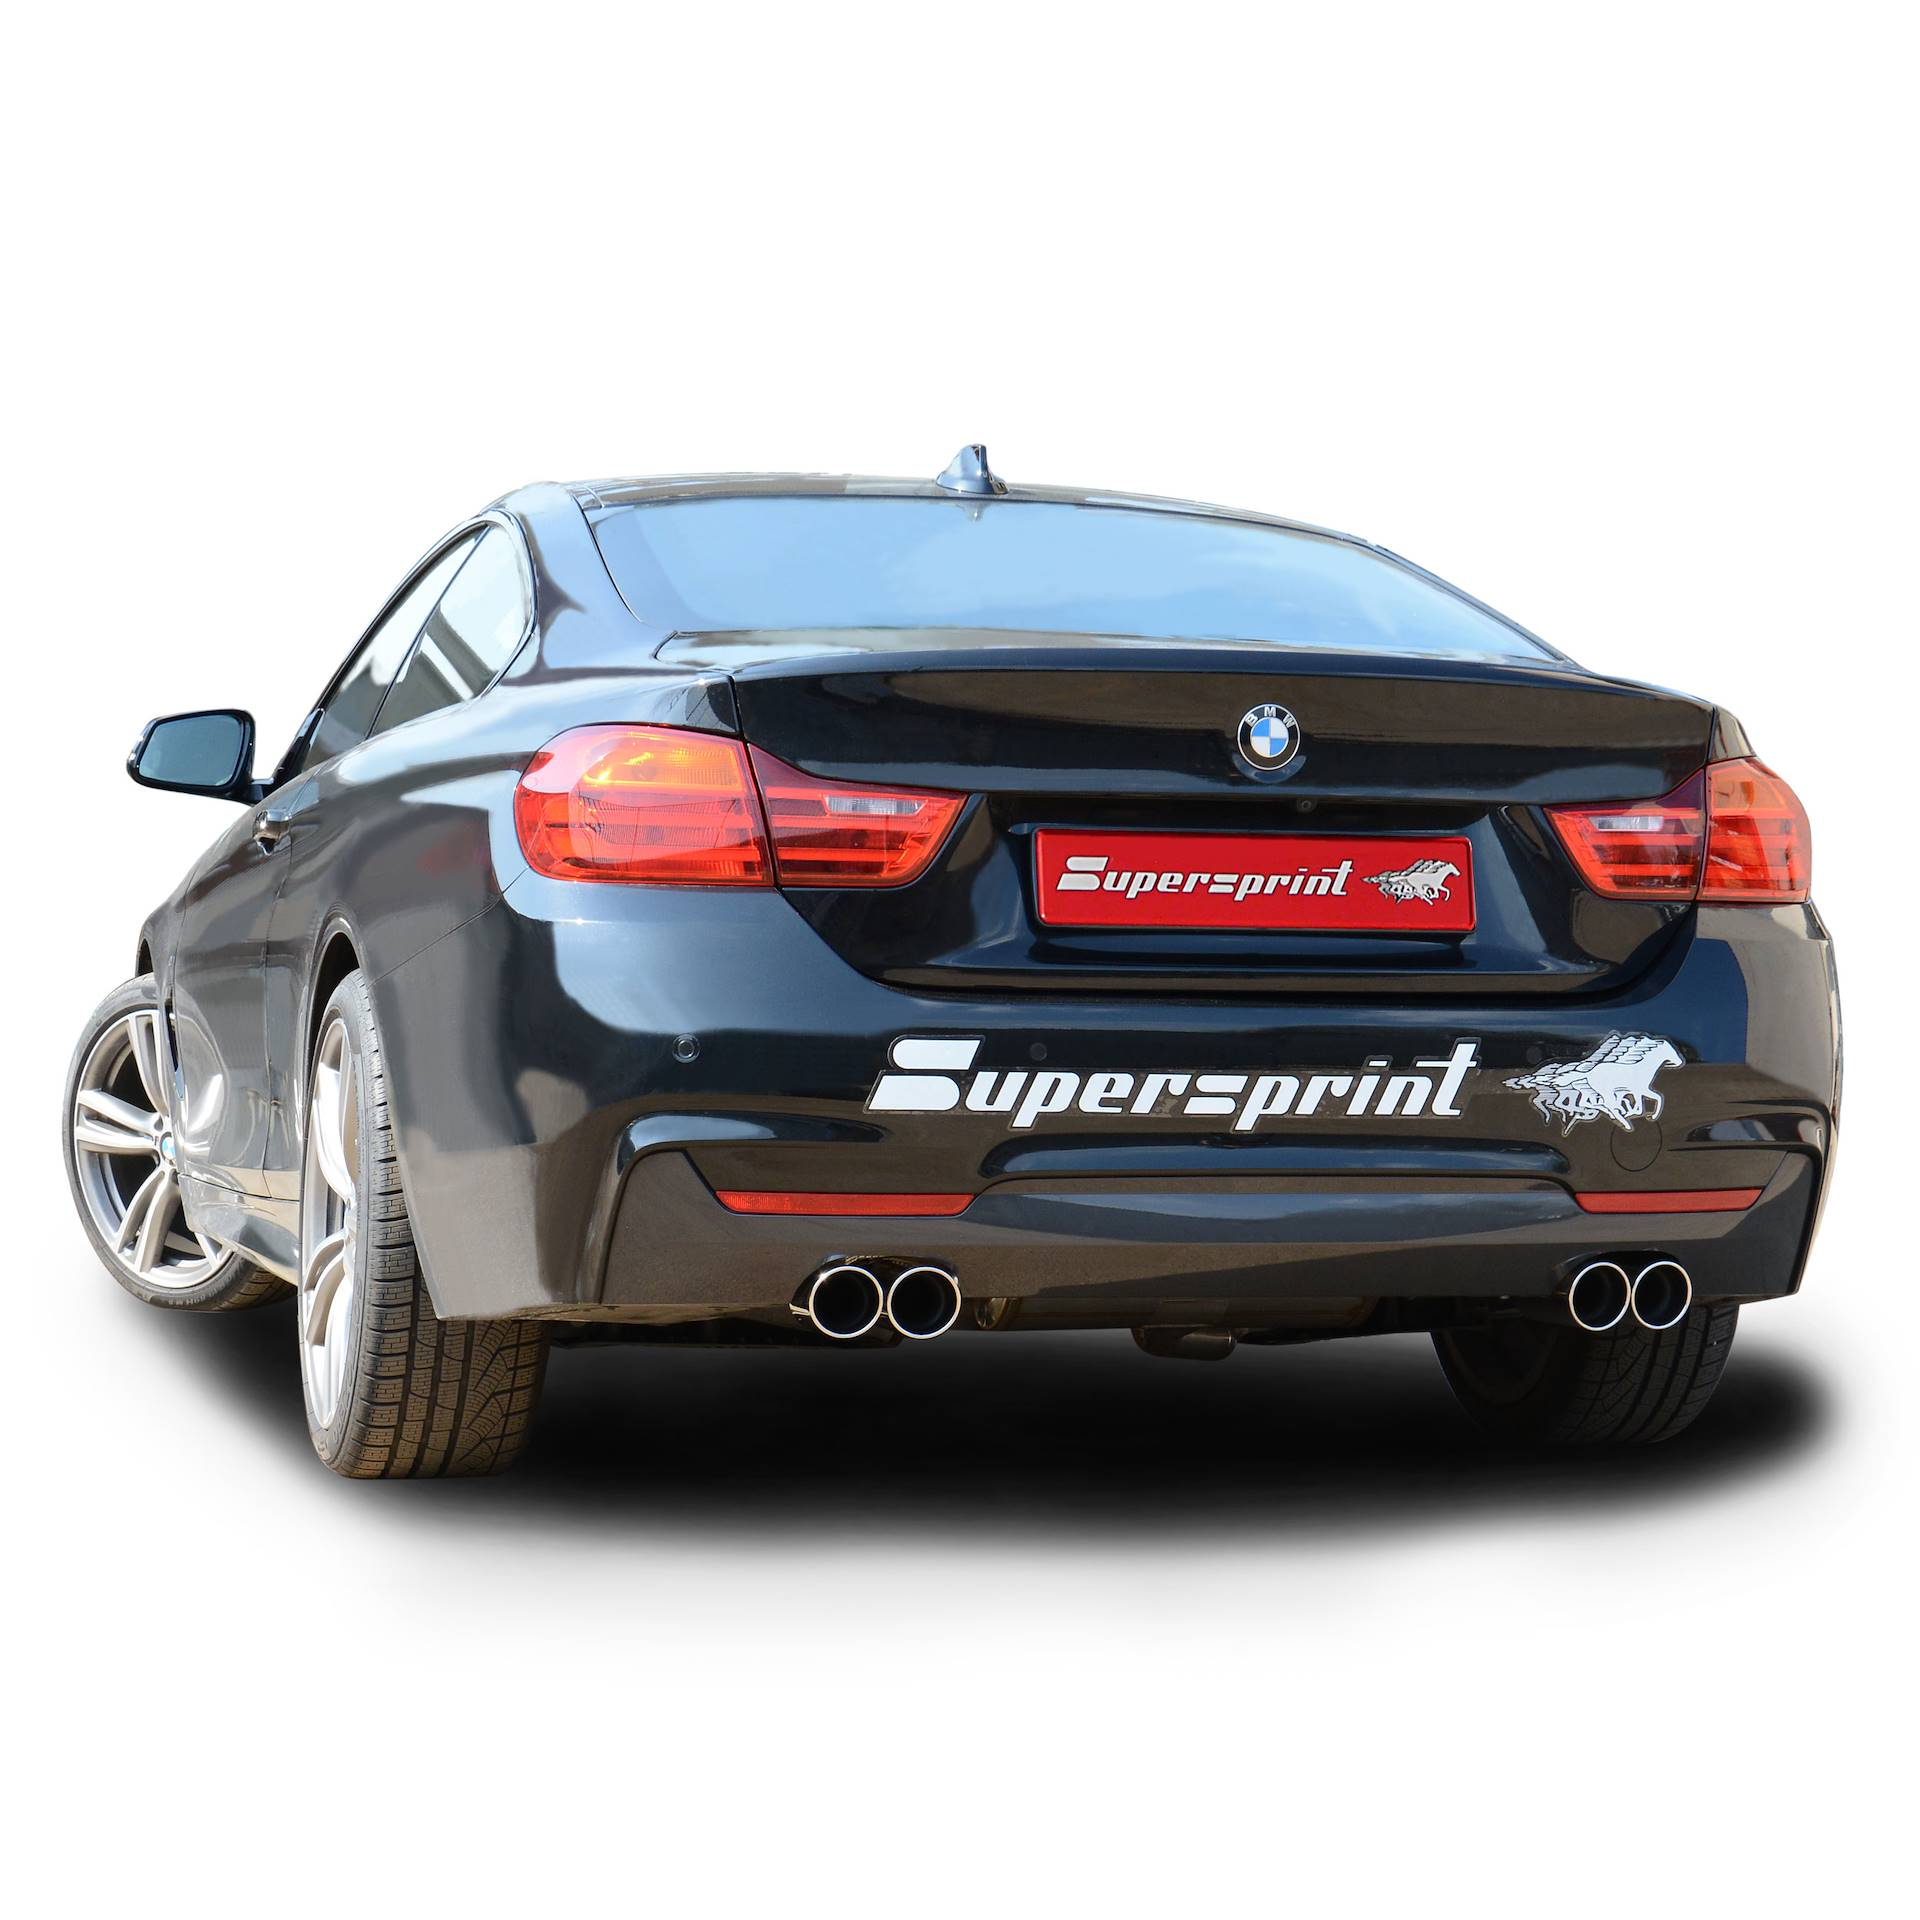 BMW - BMW F32 Coupè 420d xDrive (N47 - 184 Hp) 2013 -> 2015